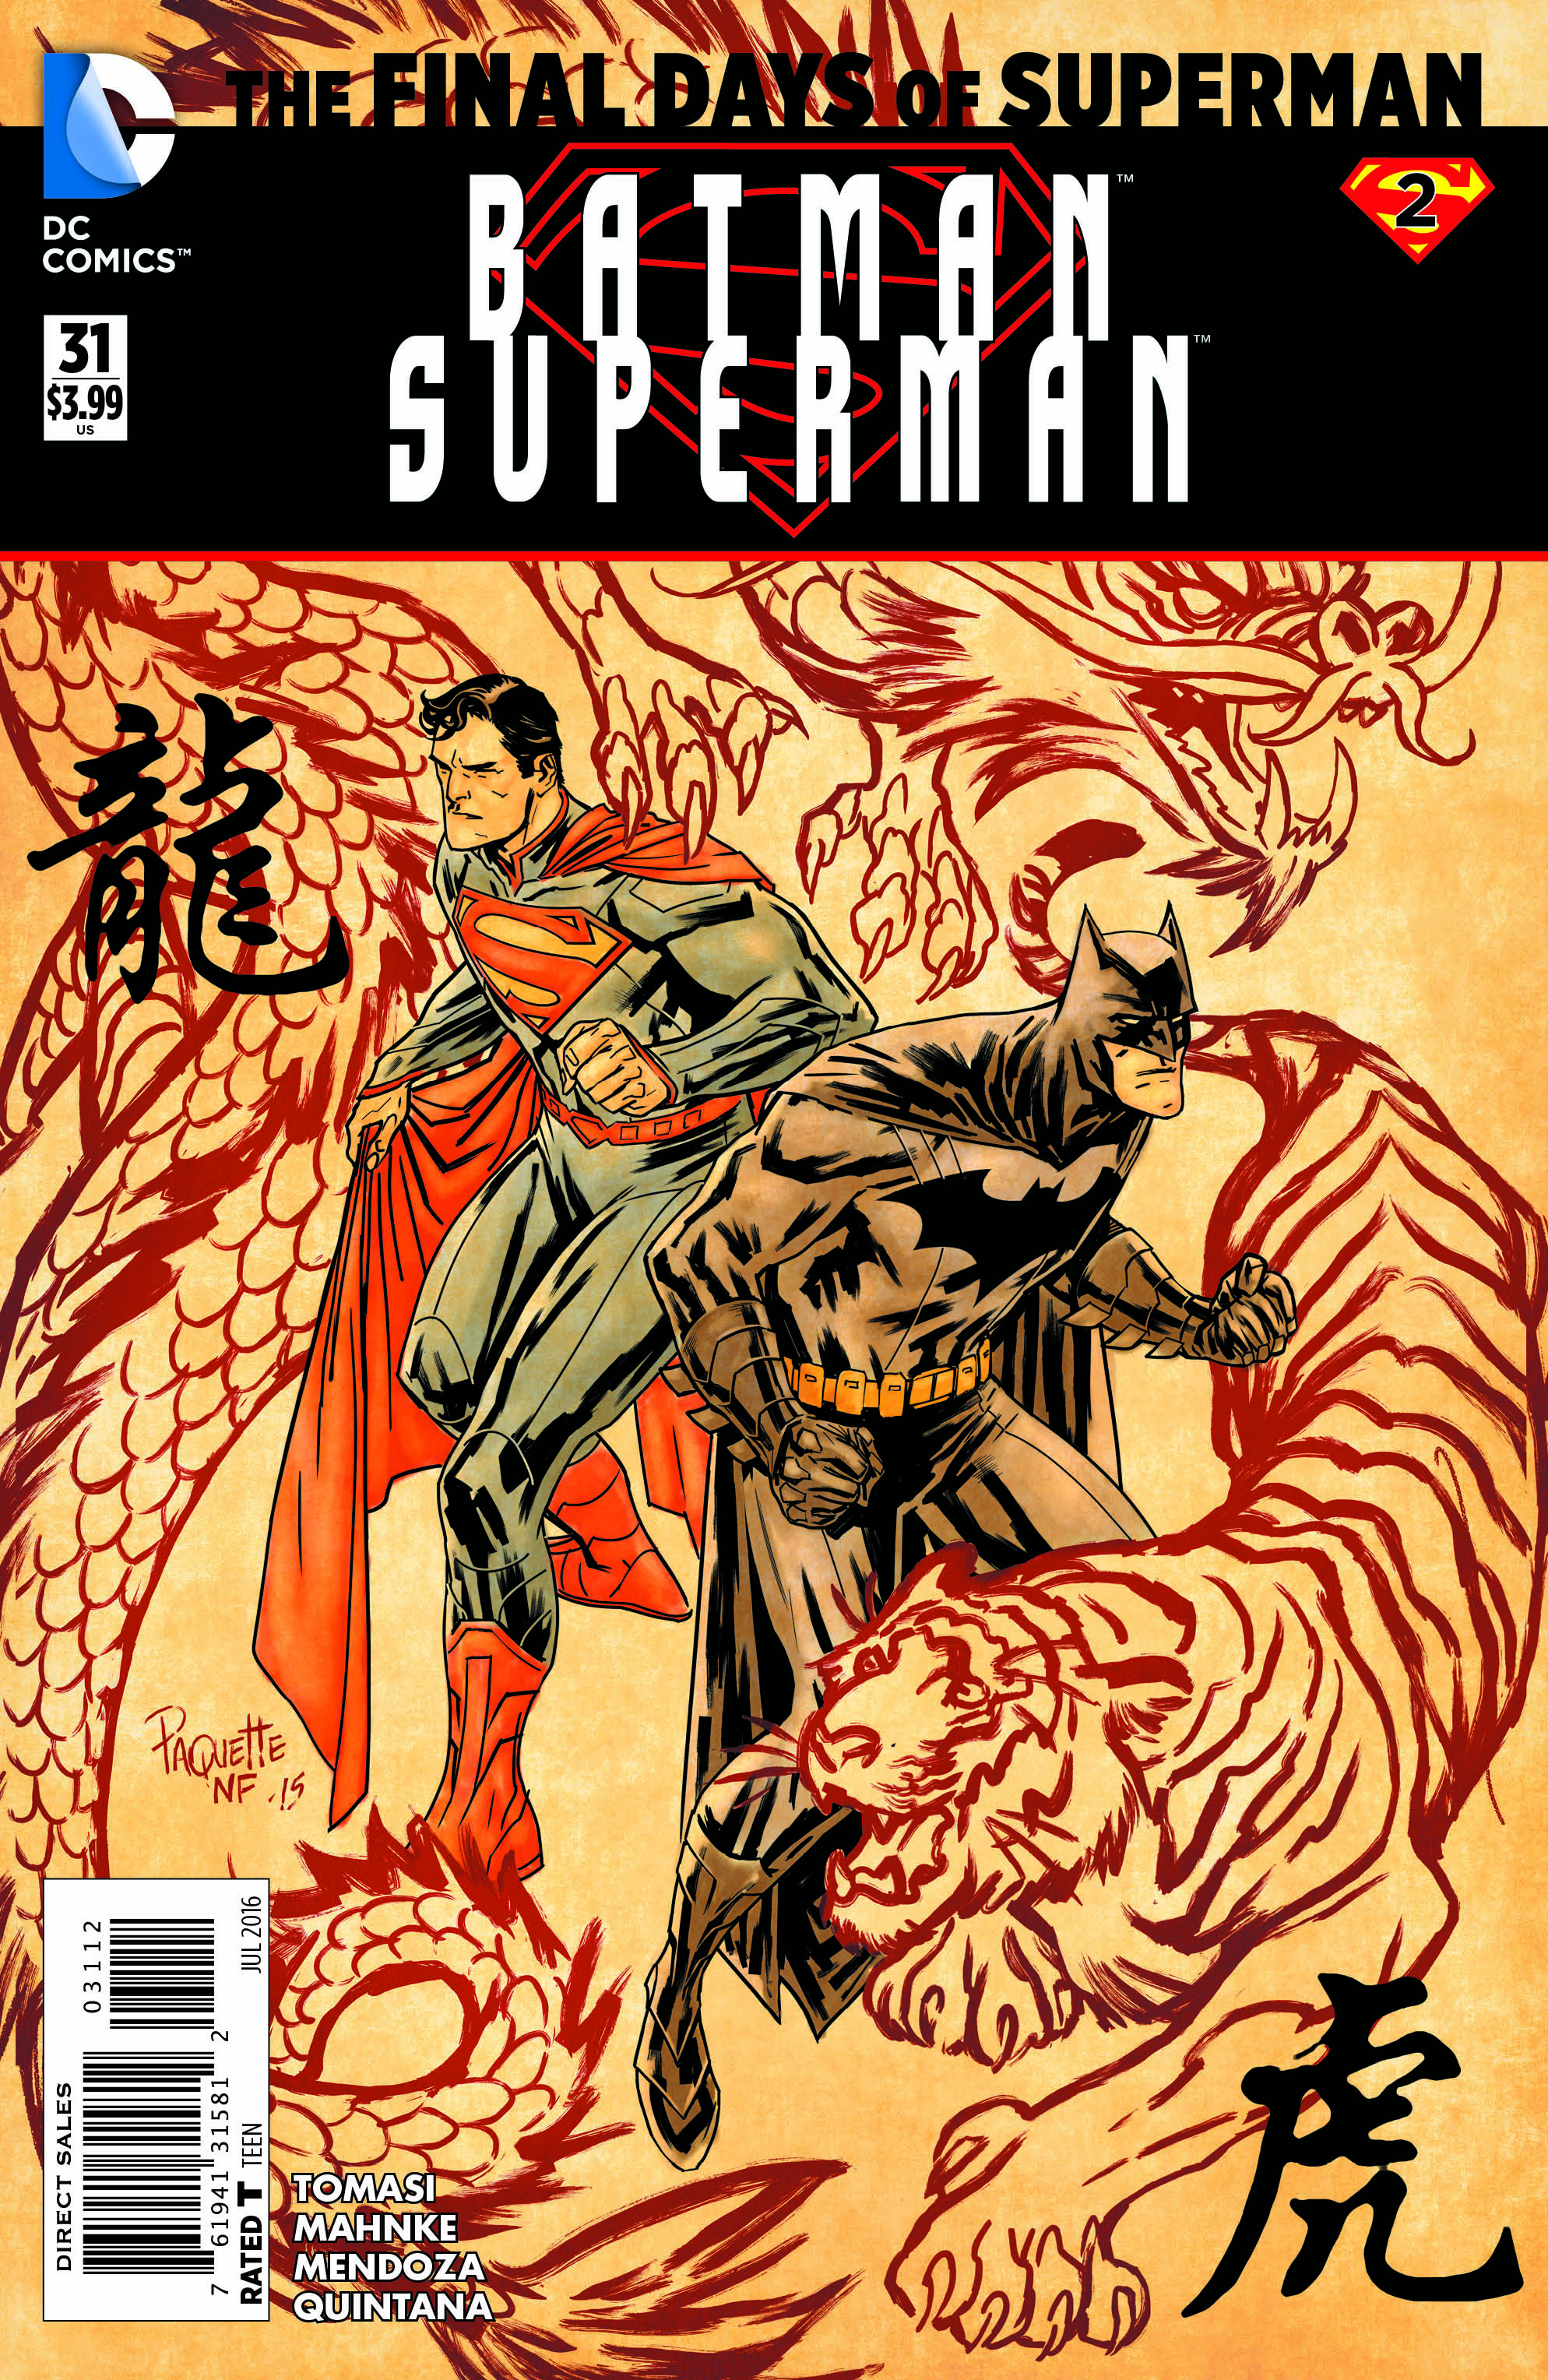 Cover by Yanick Paquette